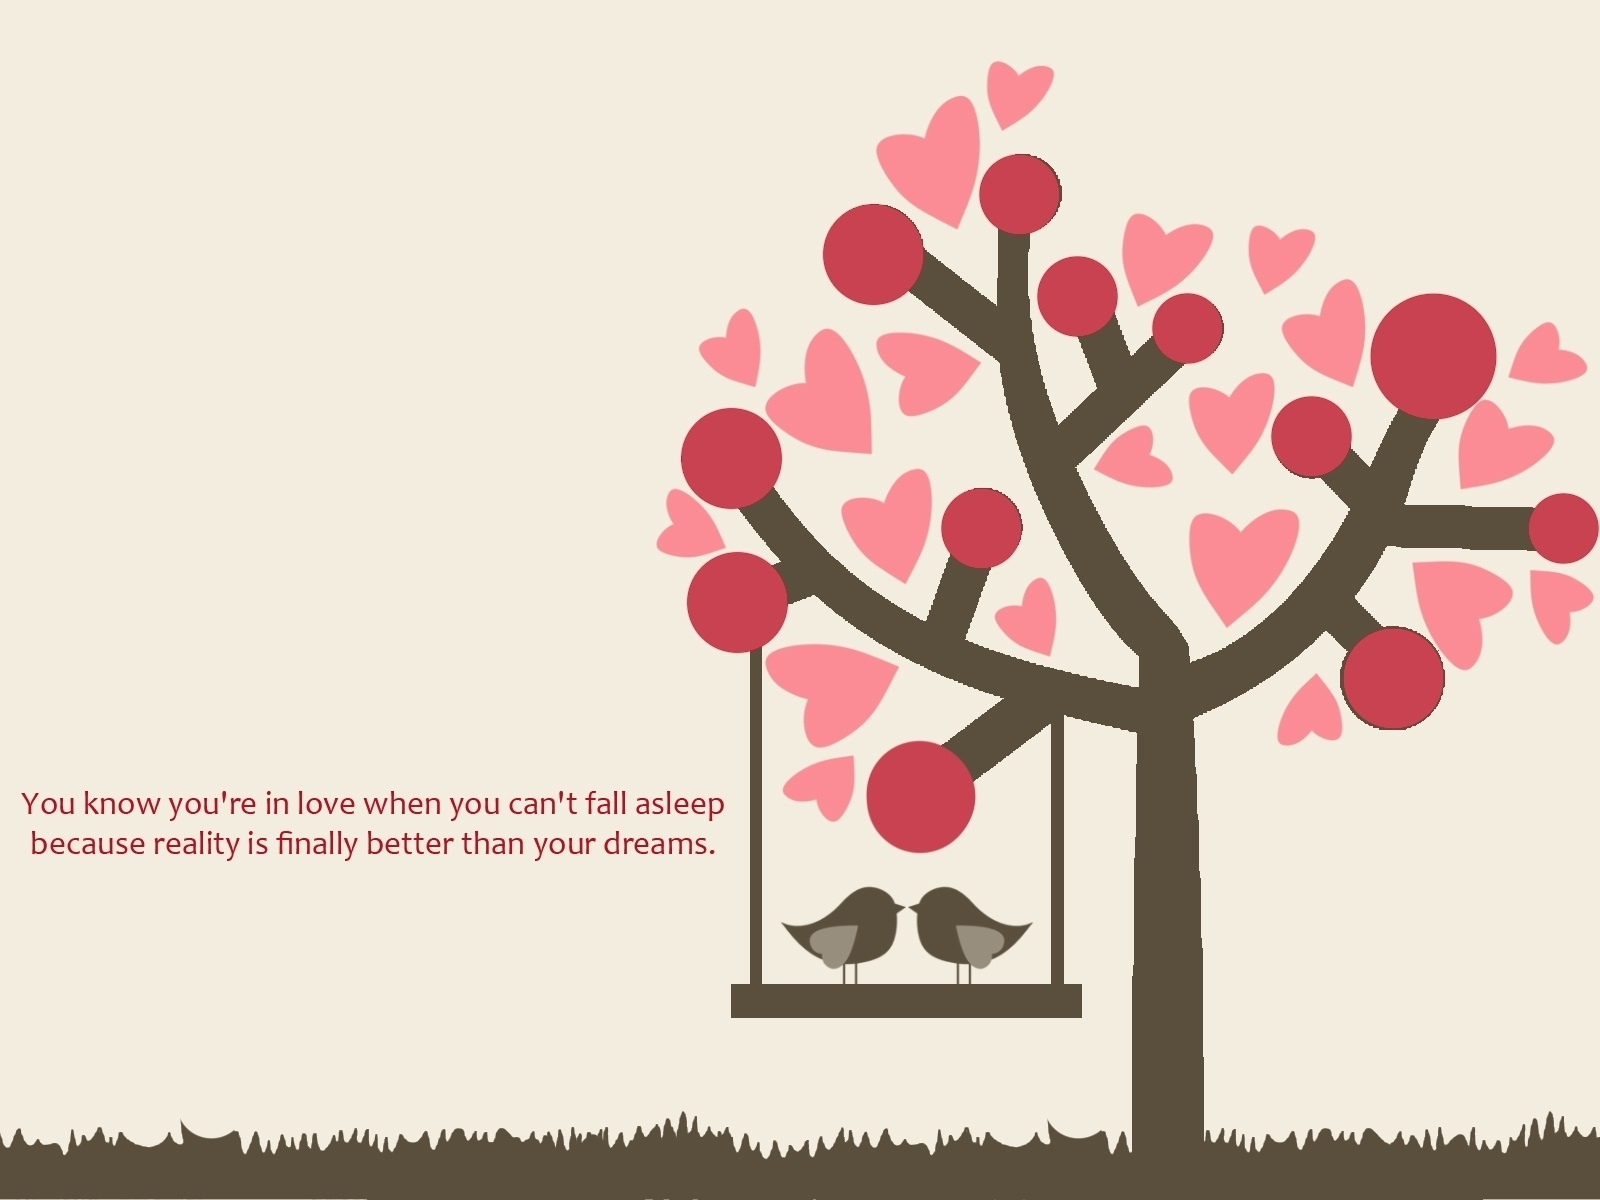 Love Birds And Brushes Hearts Wallpapers 1600x1200 170743